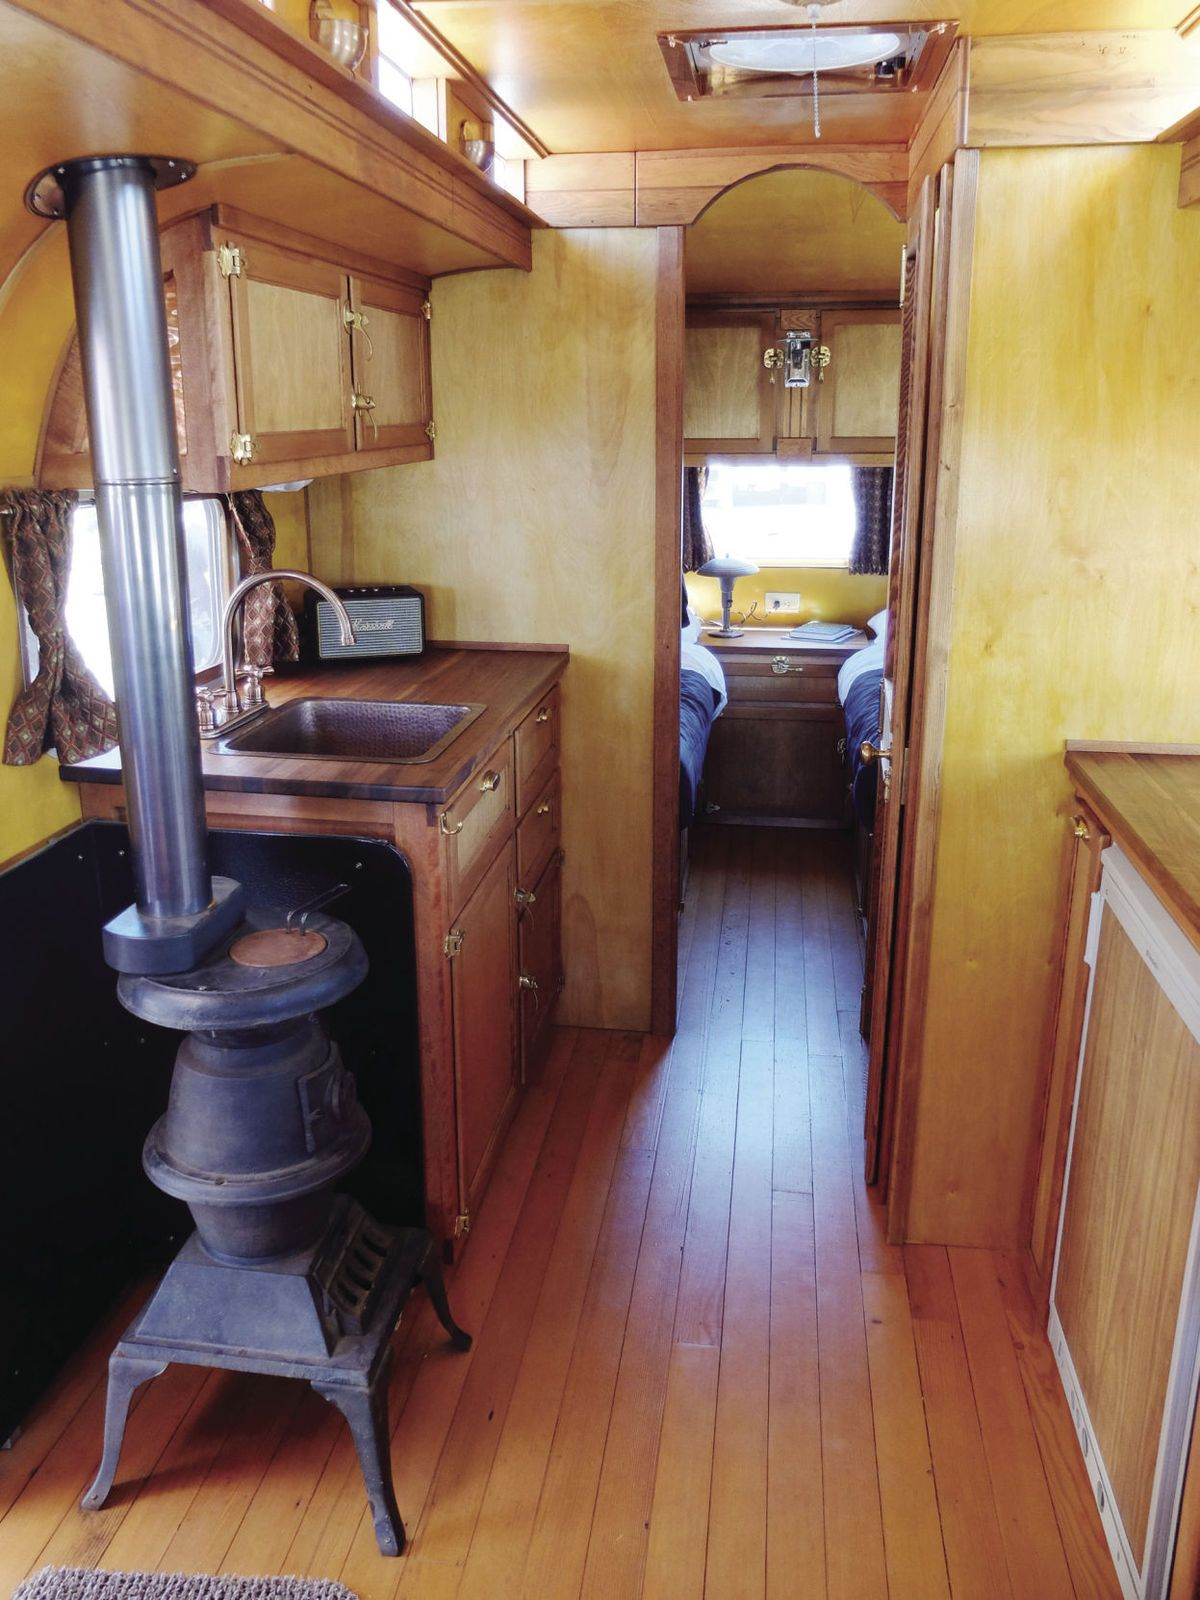 Stanwood's fifth annual Vintage Trailer Show